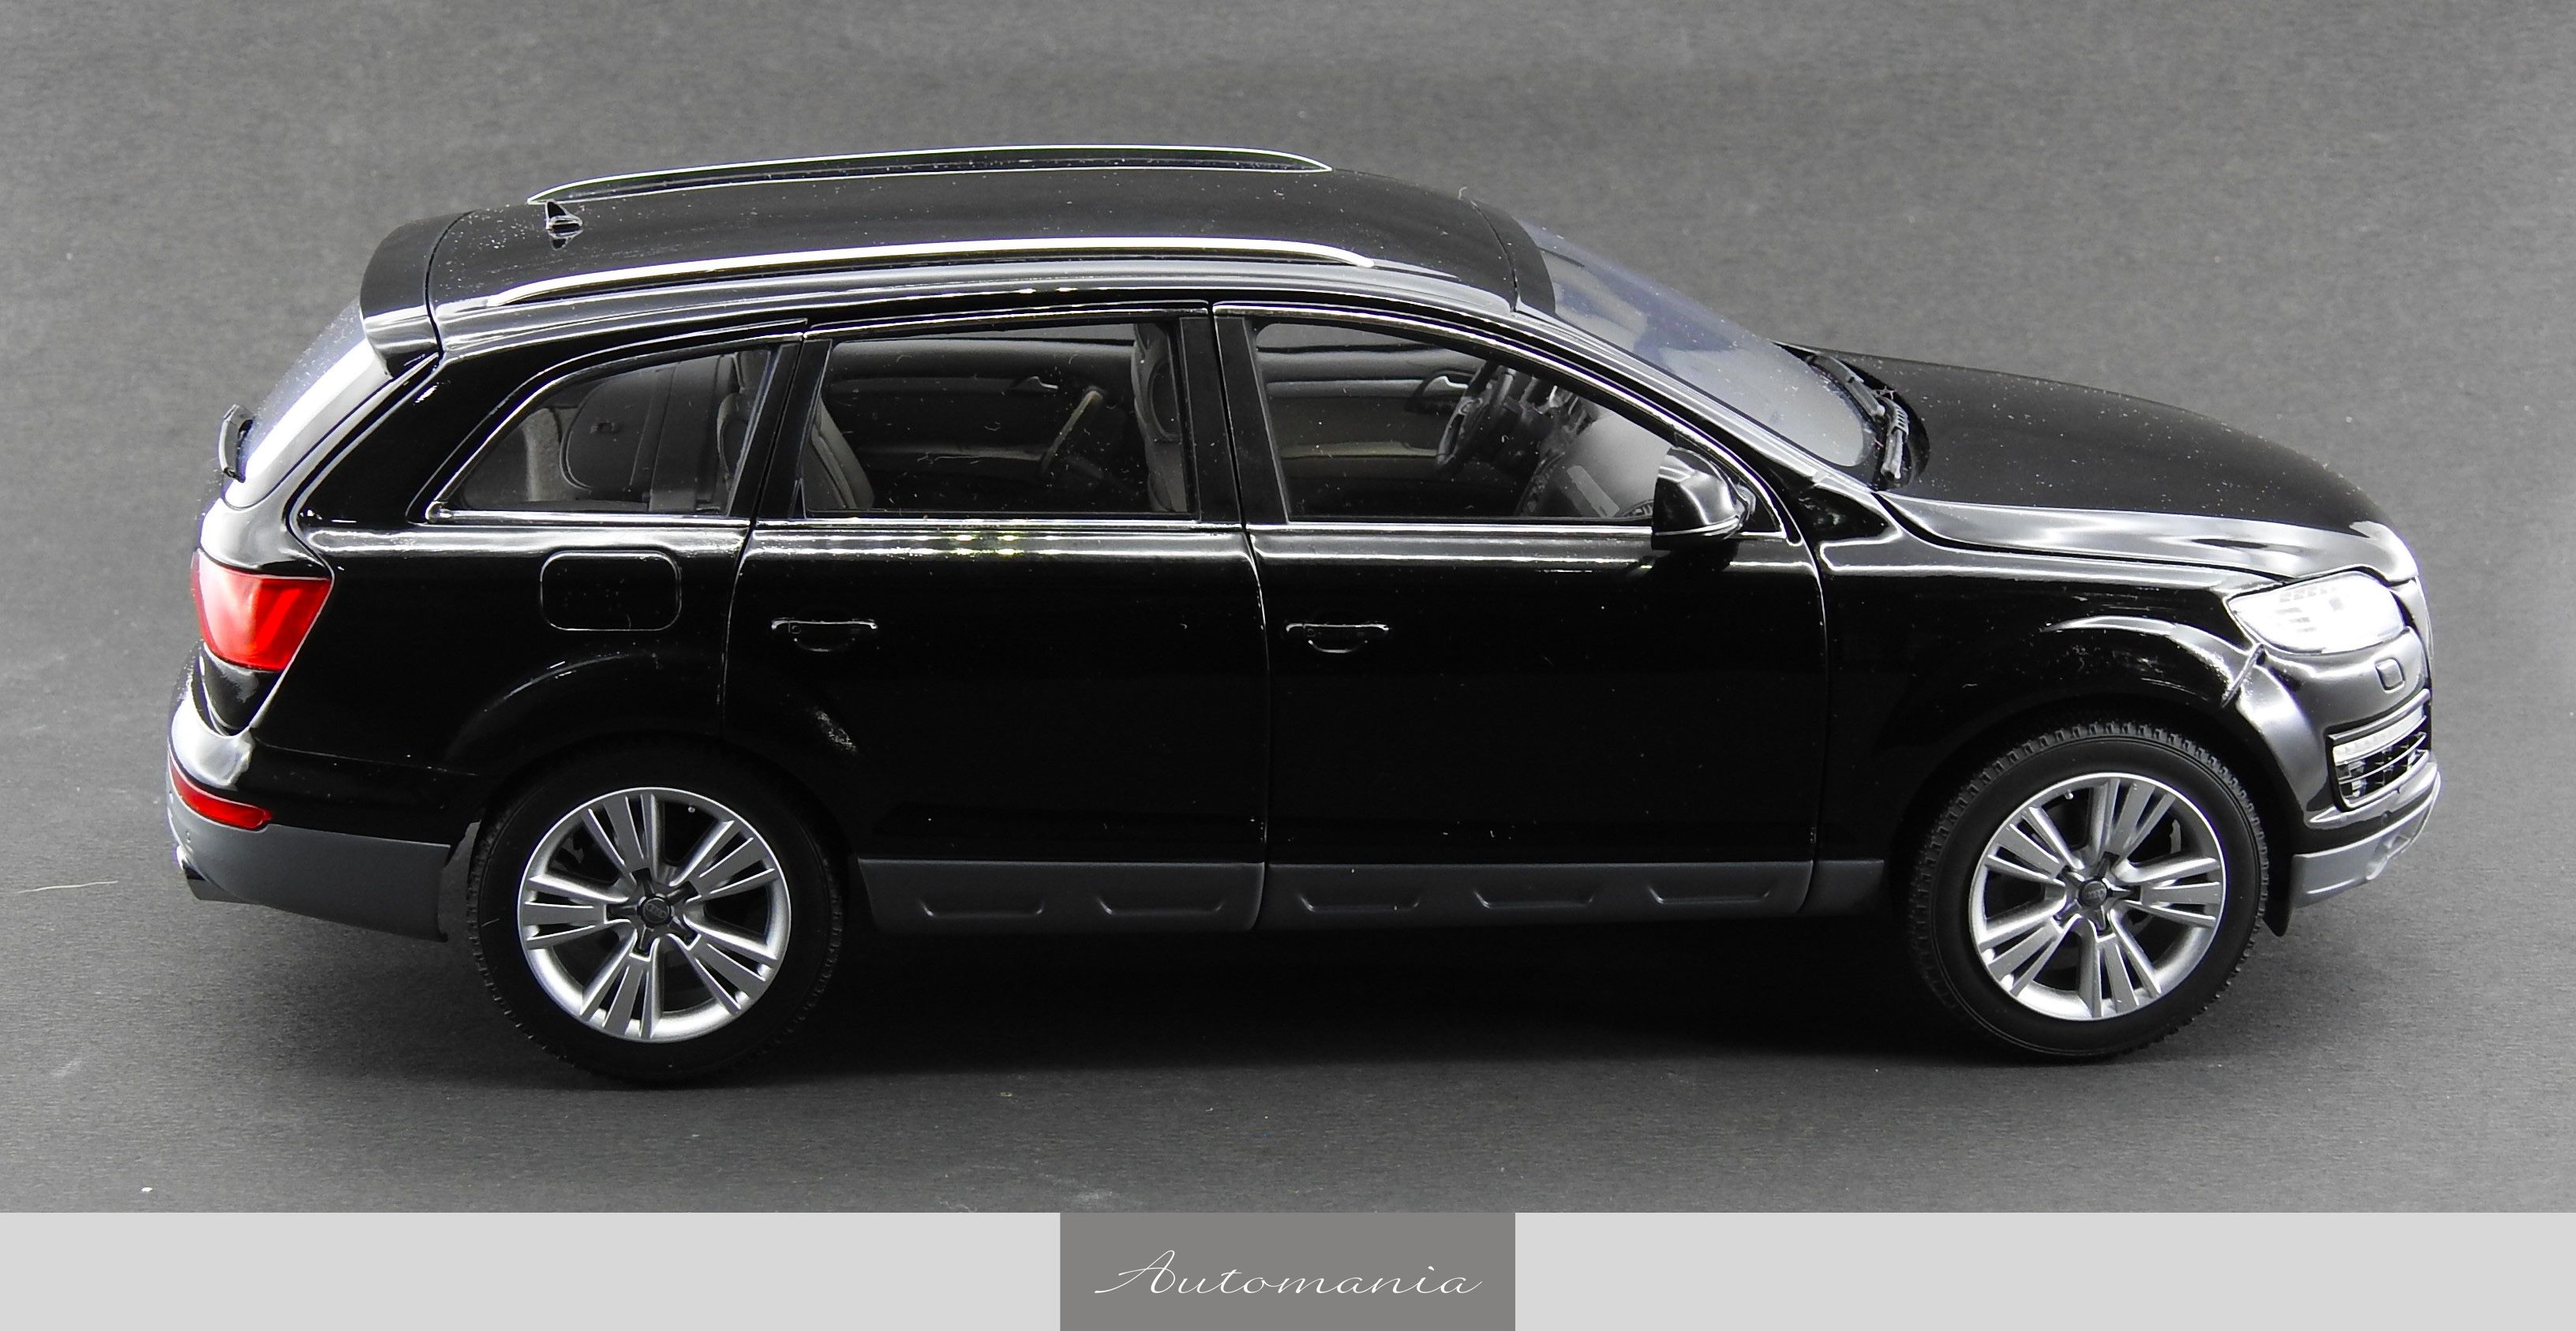 bentley mulsanne kahn with Audi Q7 Facelift Night Black on Bentley Mulsanne Mulliner 2013 Wallpaper Ds11 I4575 further The Coolest Cars From The 2016 Geneva Motor Show additionally 847 Amg Sport Line Conversion 2017 as well How To Draw A Giraffe Step By Step moreover Casas En Venta En Cuenca Ecuador 2014.